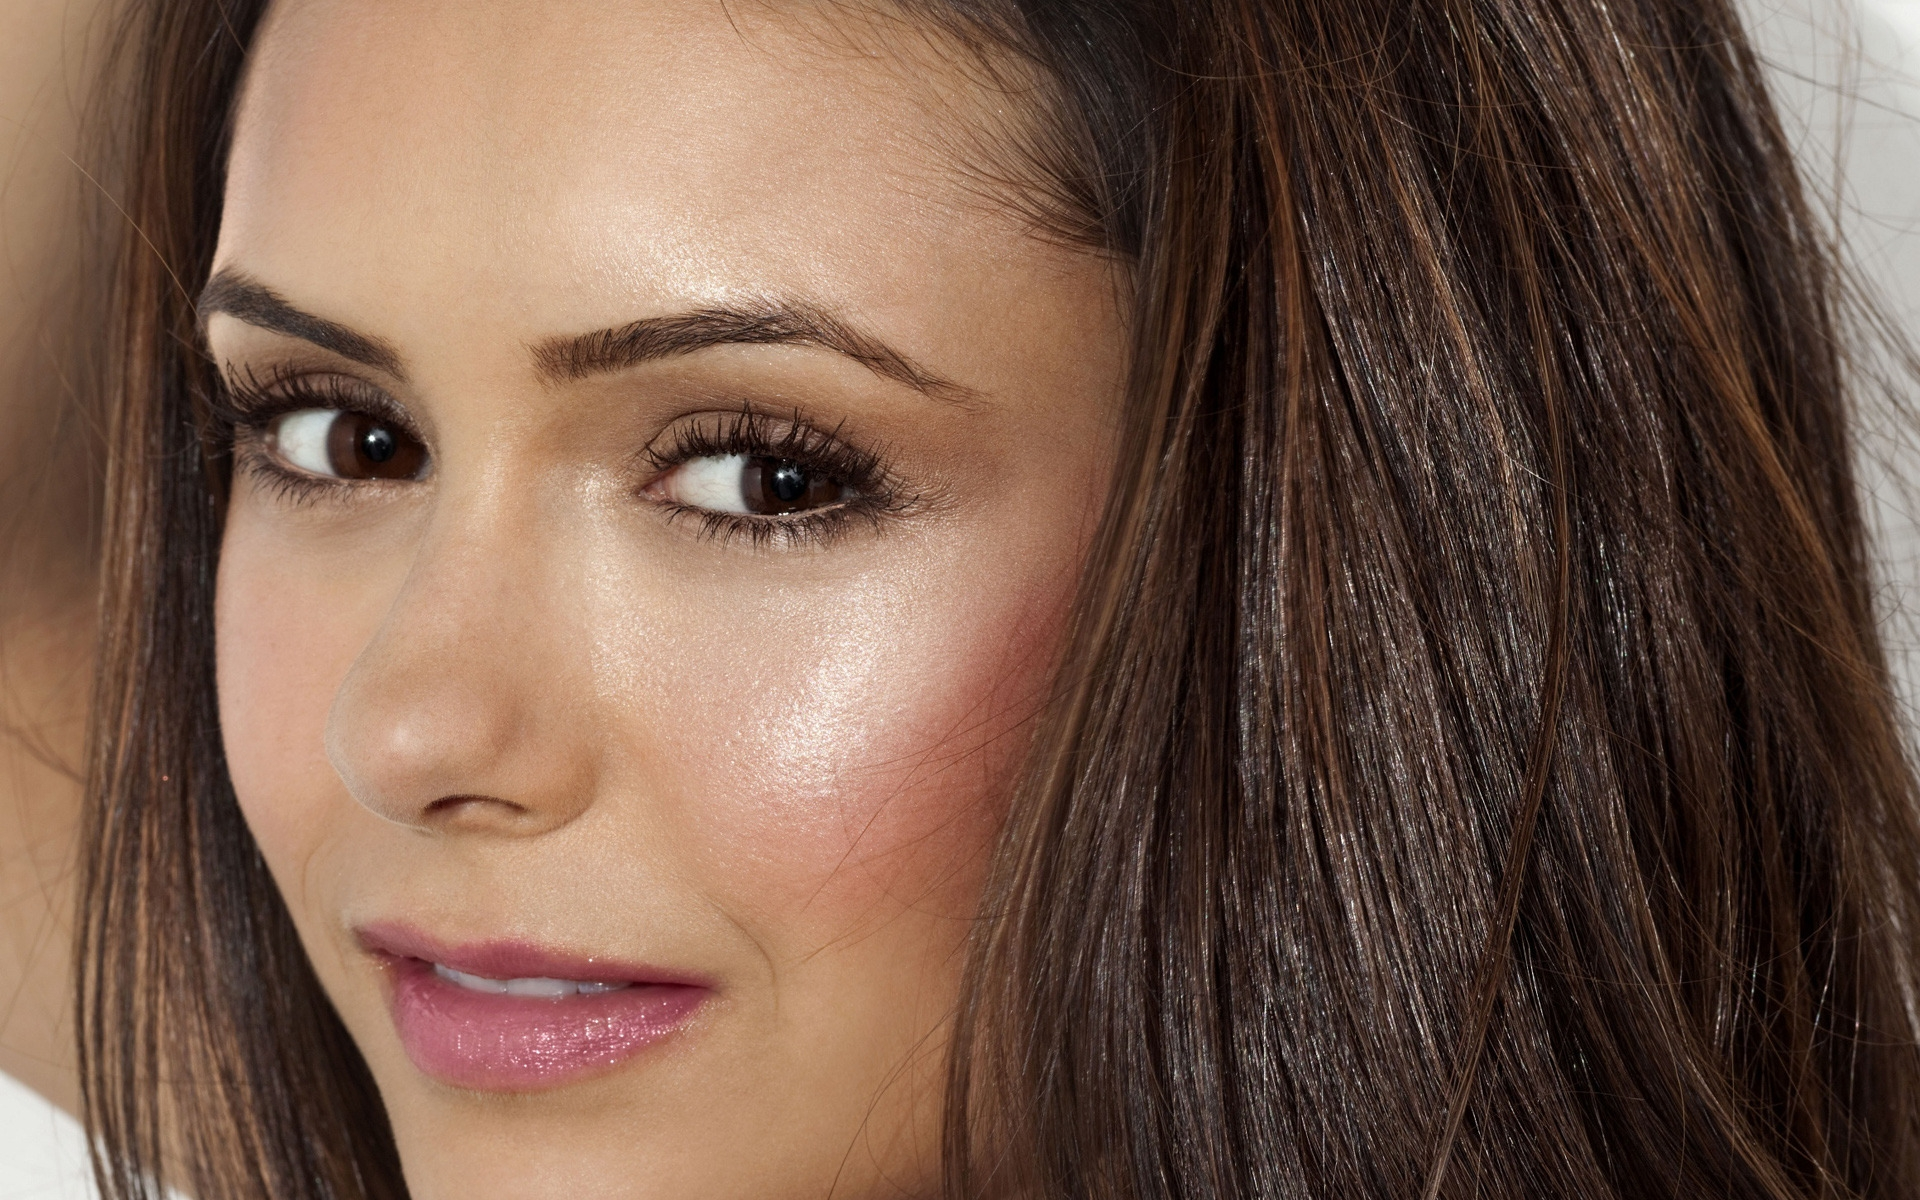 Nina Dobrev CloseUp for 1920 x 1200 widescreen resolution